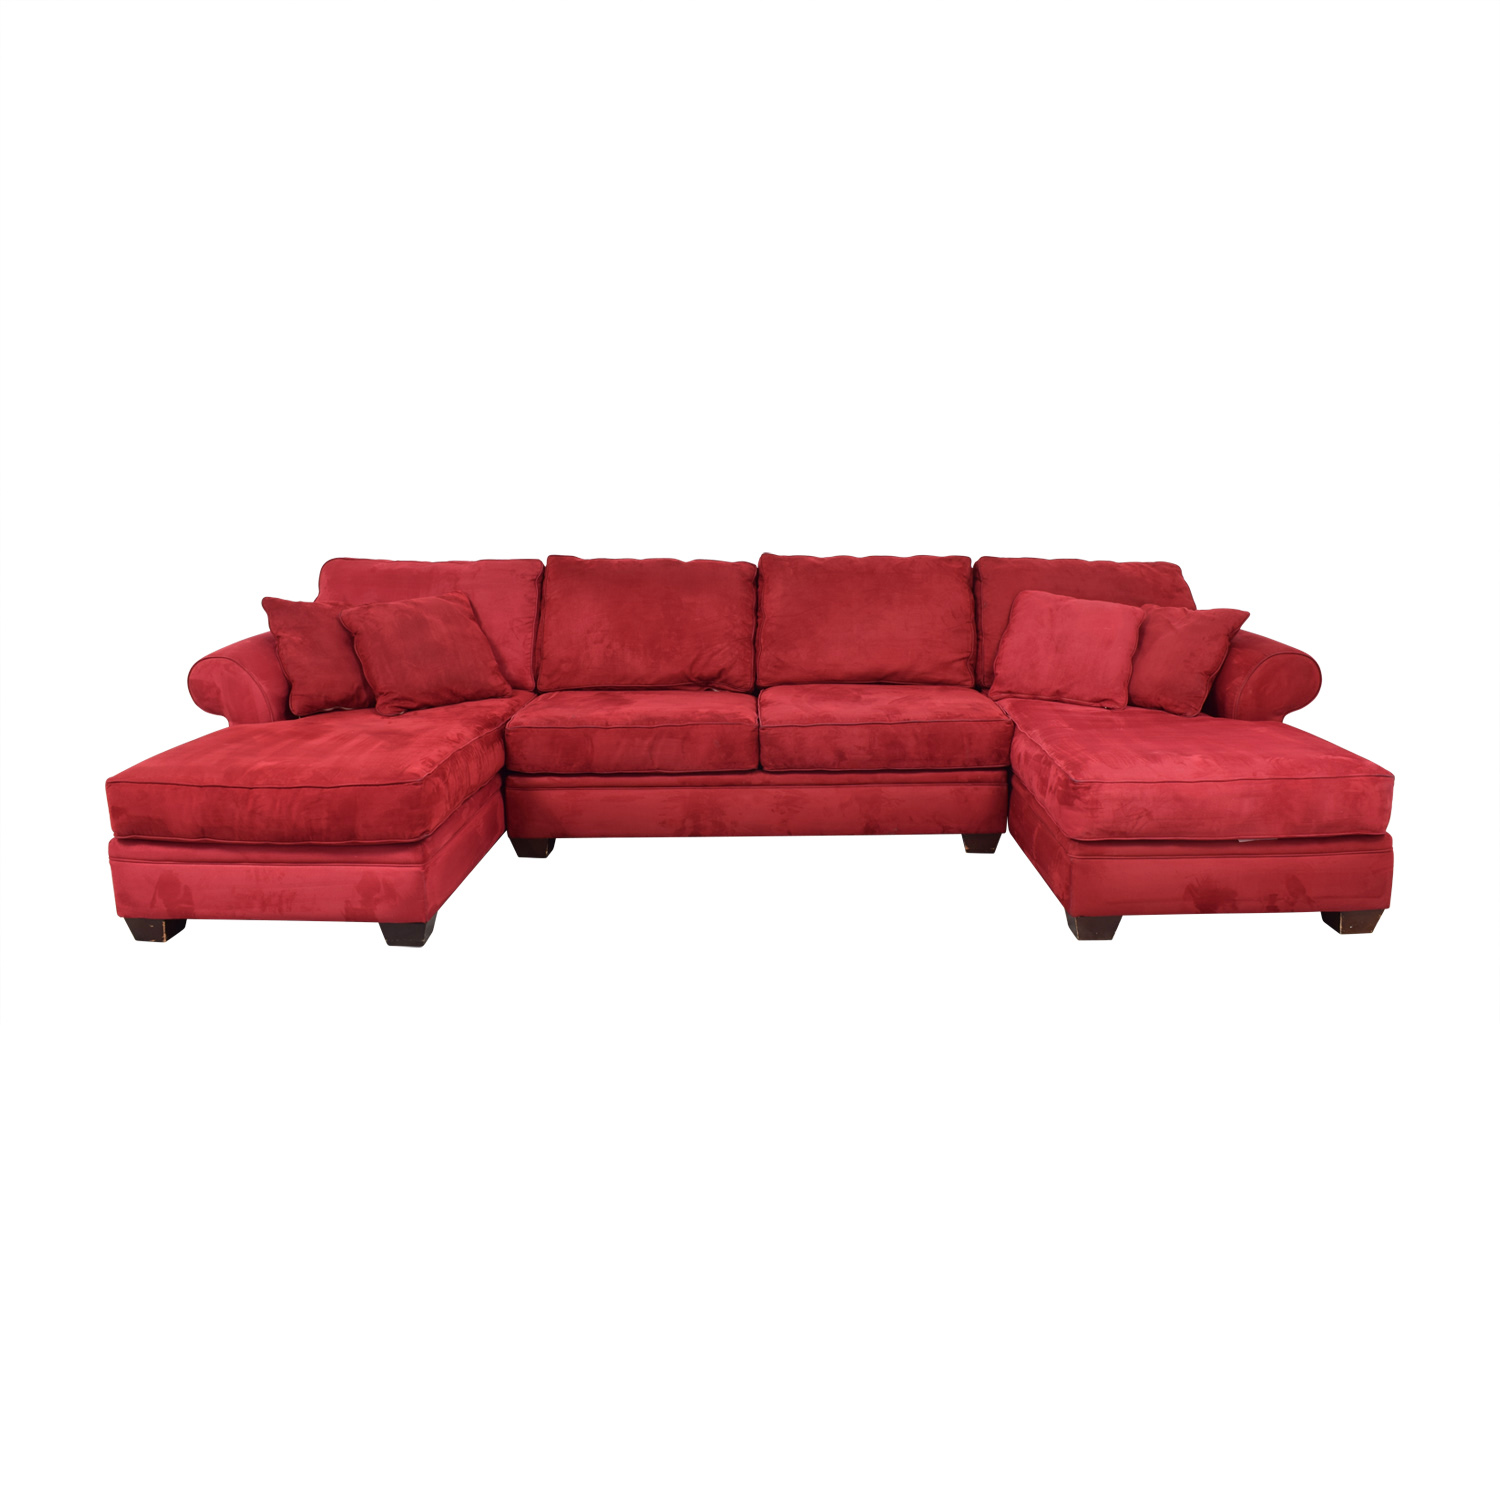 Macy's U-Shaped Red Double Chaise Sectional / Sectionals